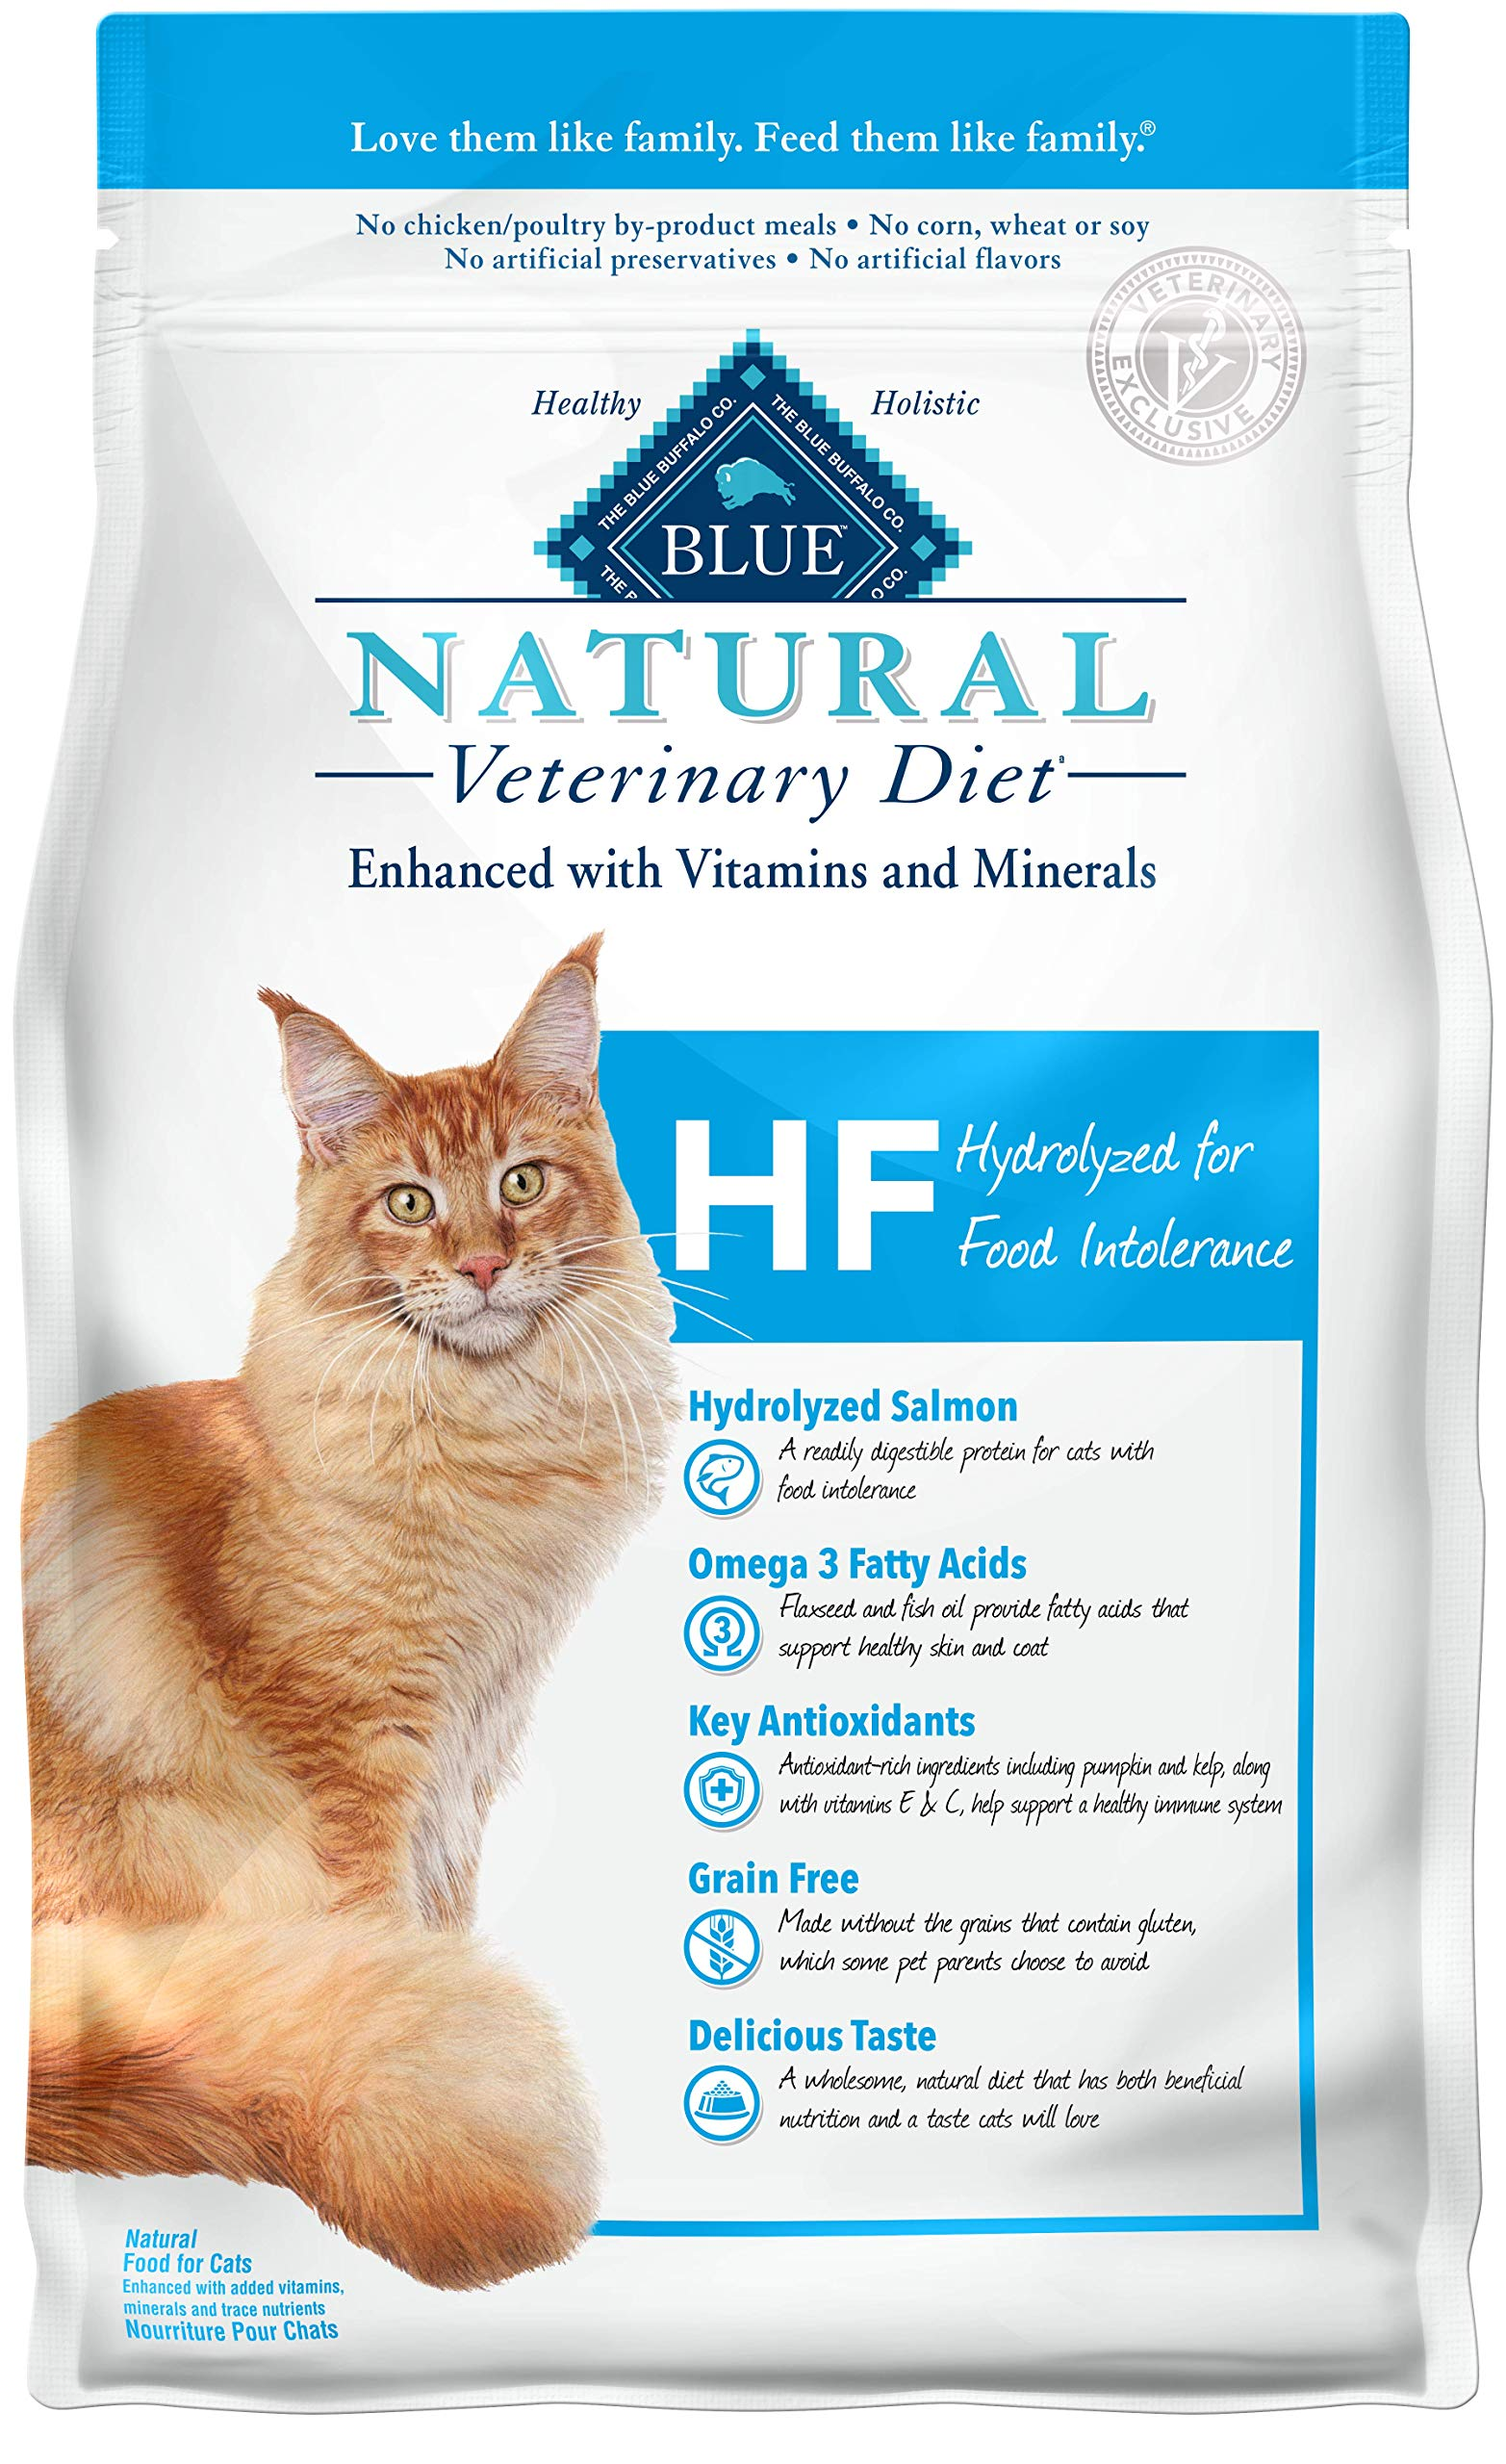 Blue Buffalo Natural Veterinary Diet Hydrolyzed for Food Intolerance for Cats 7lbs by Blue Buffalo Natural Veterinary Diet